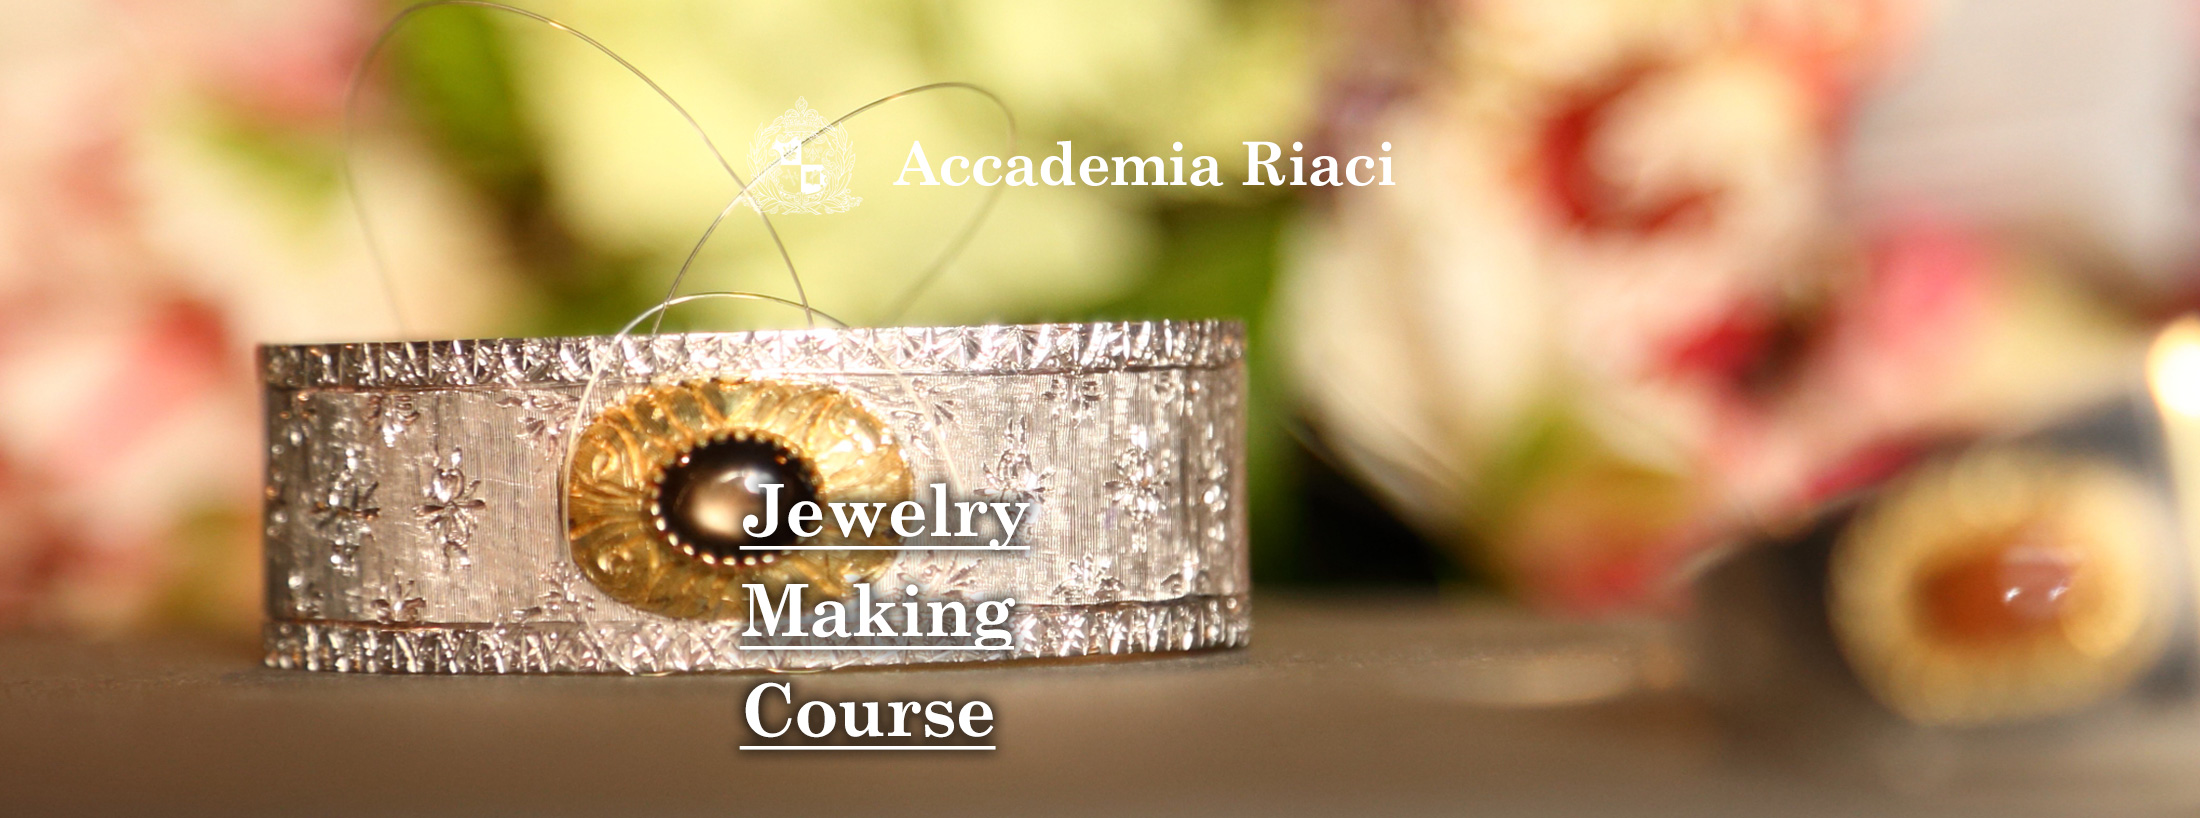 Jewelry Making Course